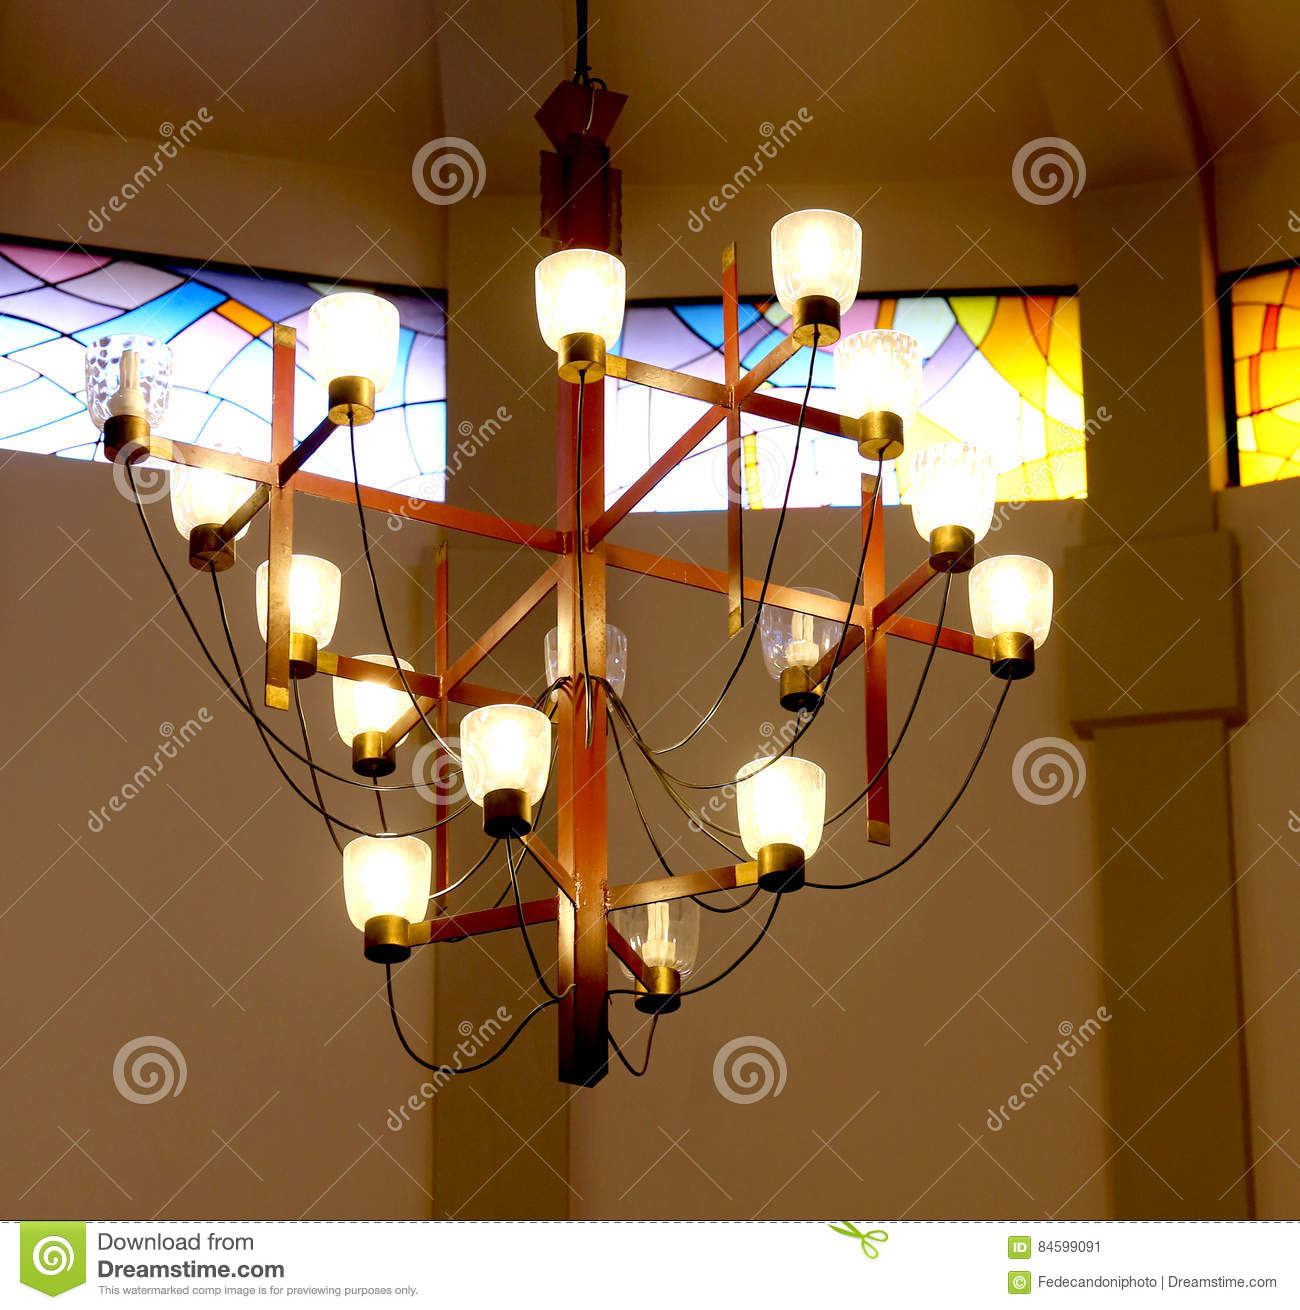 Chandelier With Many Light Bulbs Inside A Place Of Worship Stock ...